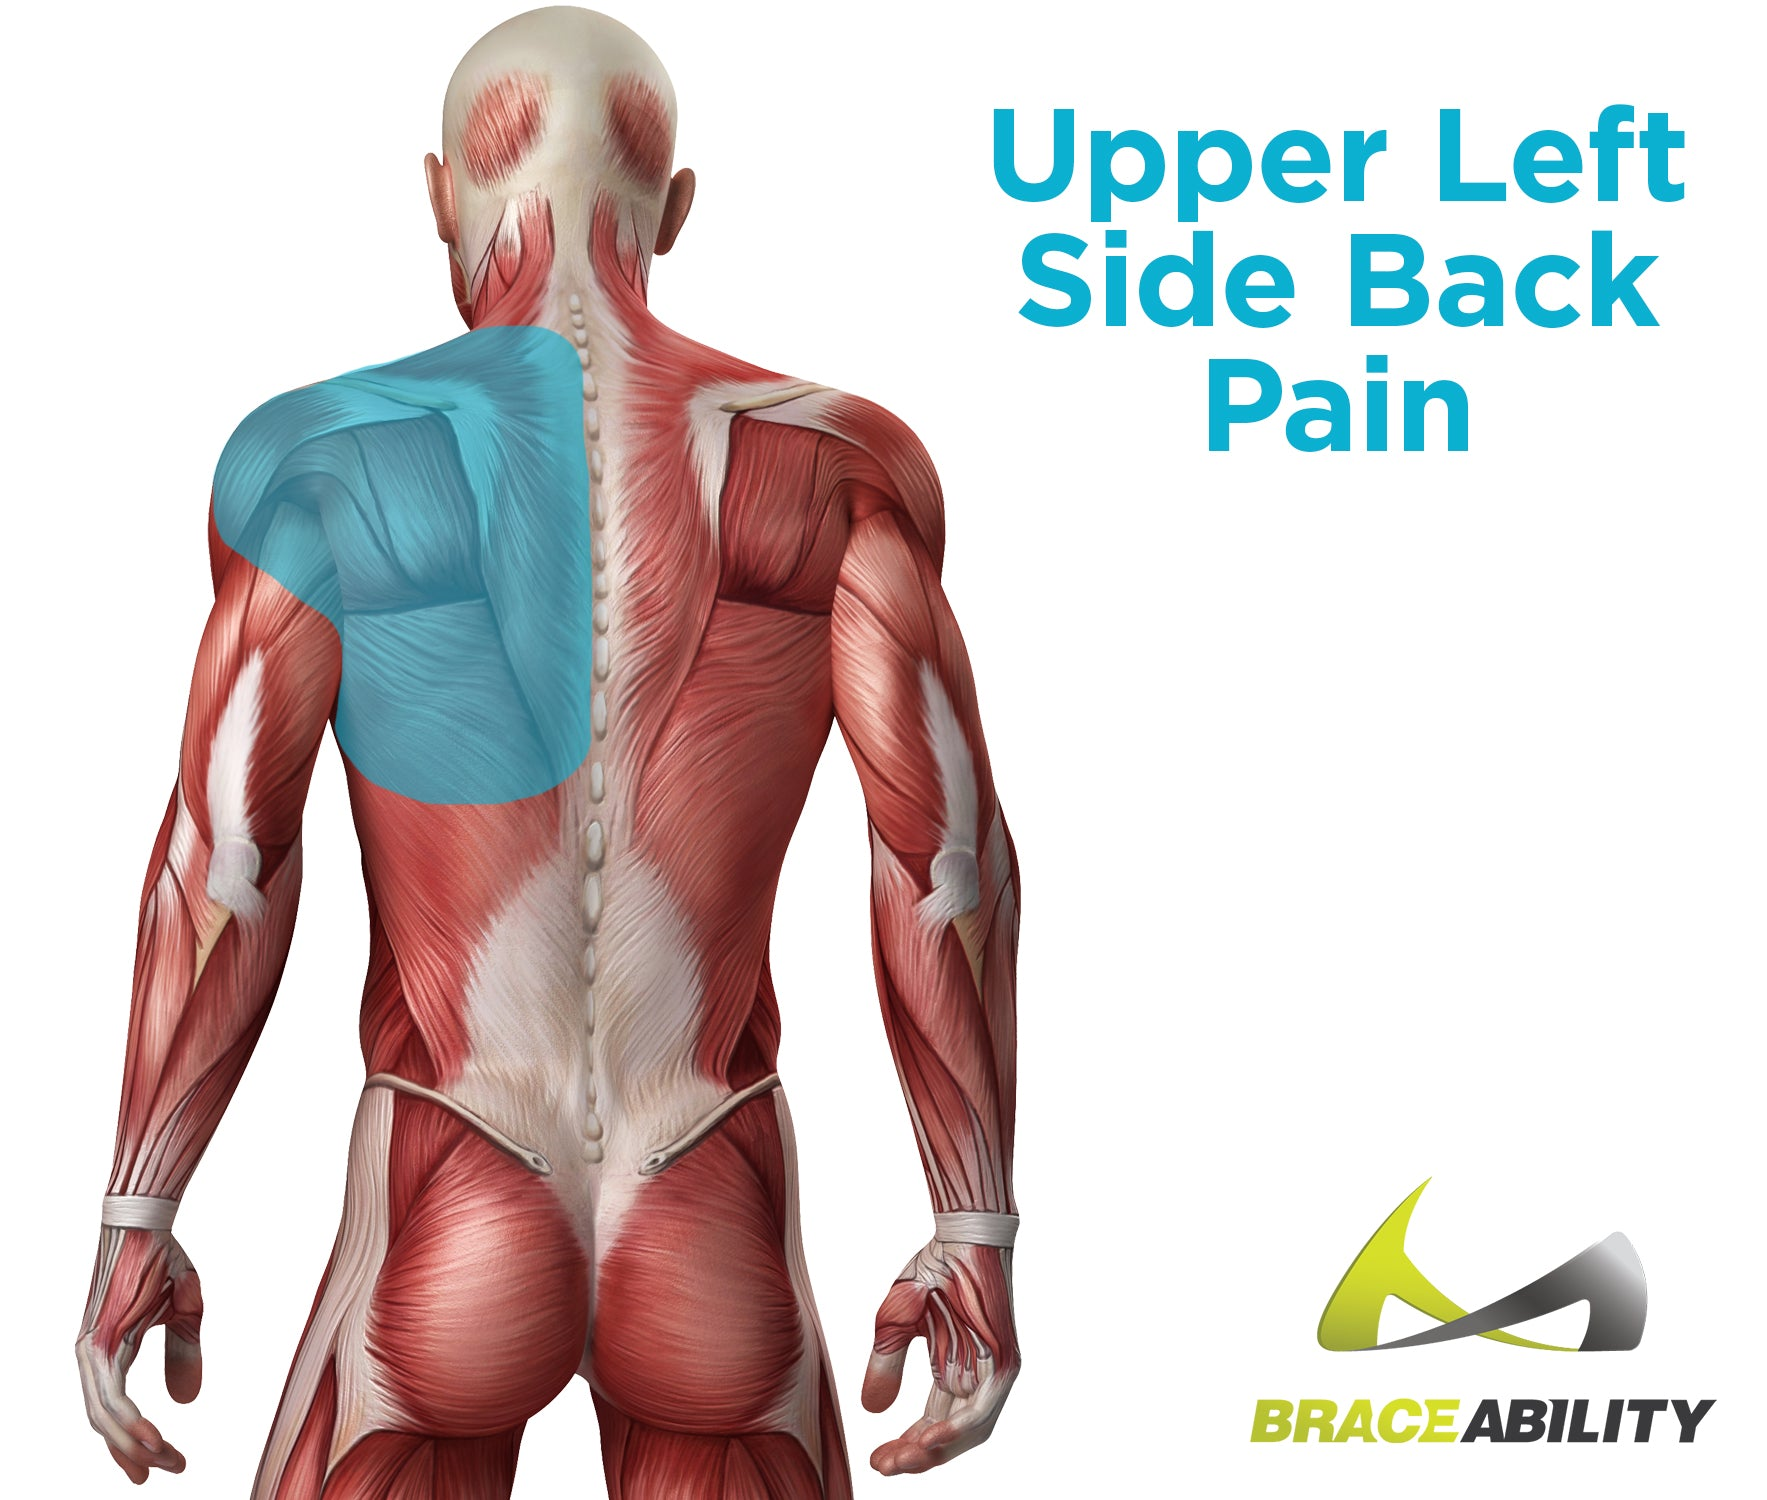 Causes of upper left side back and shoulder pain